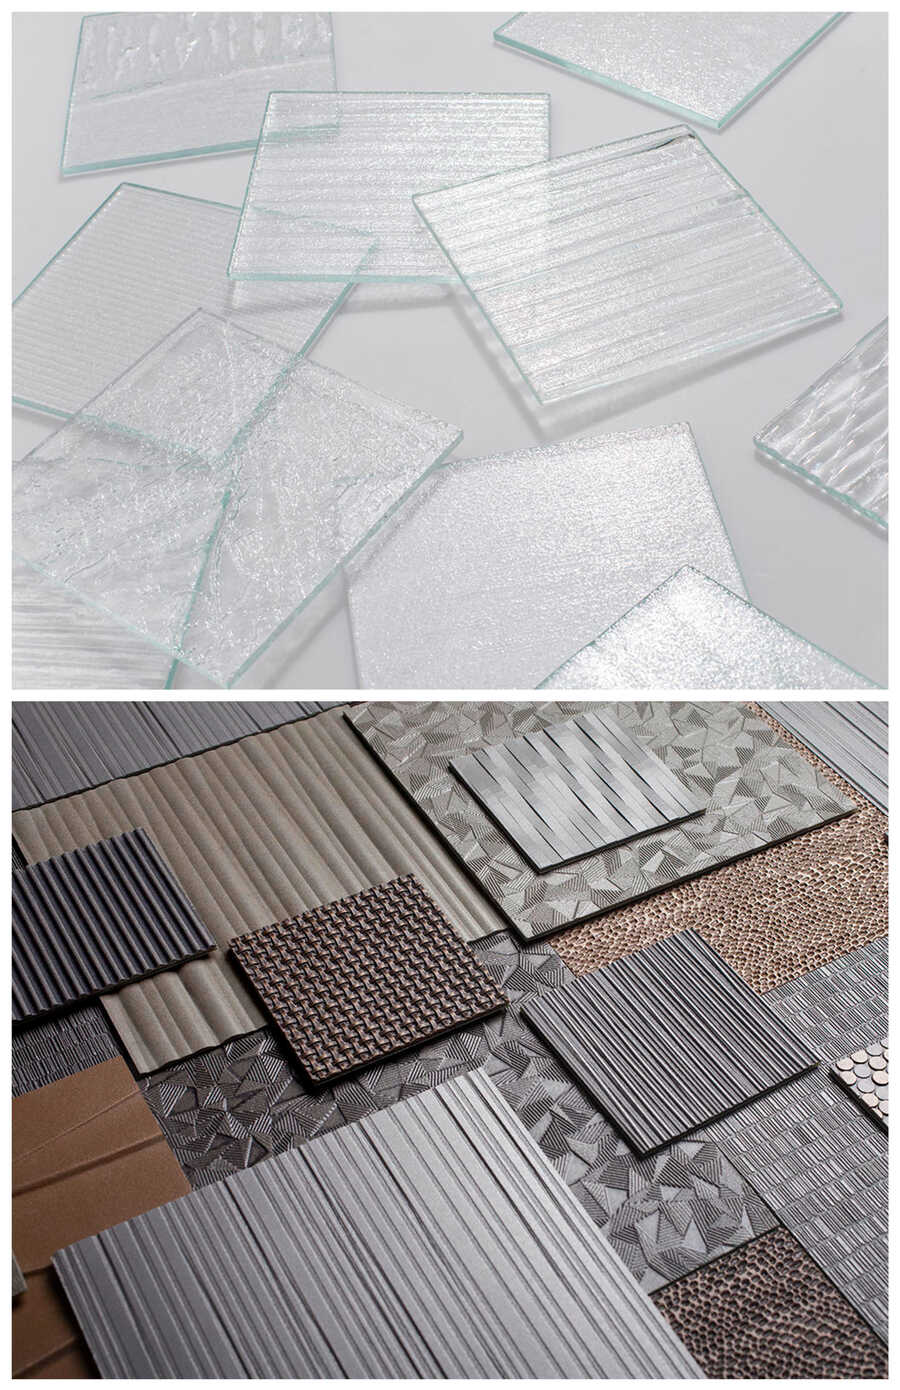 glass plates, different surfaces